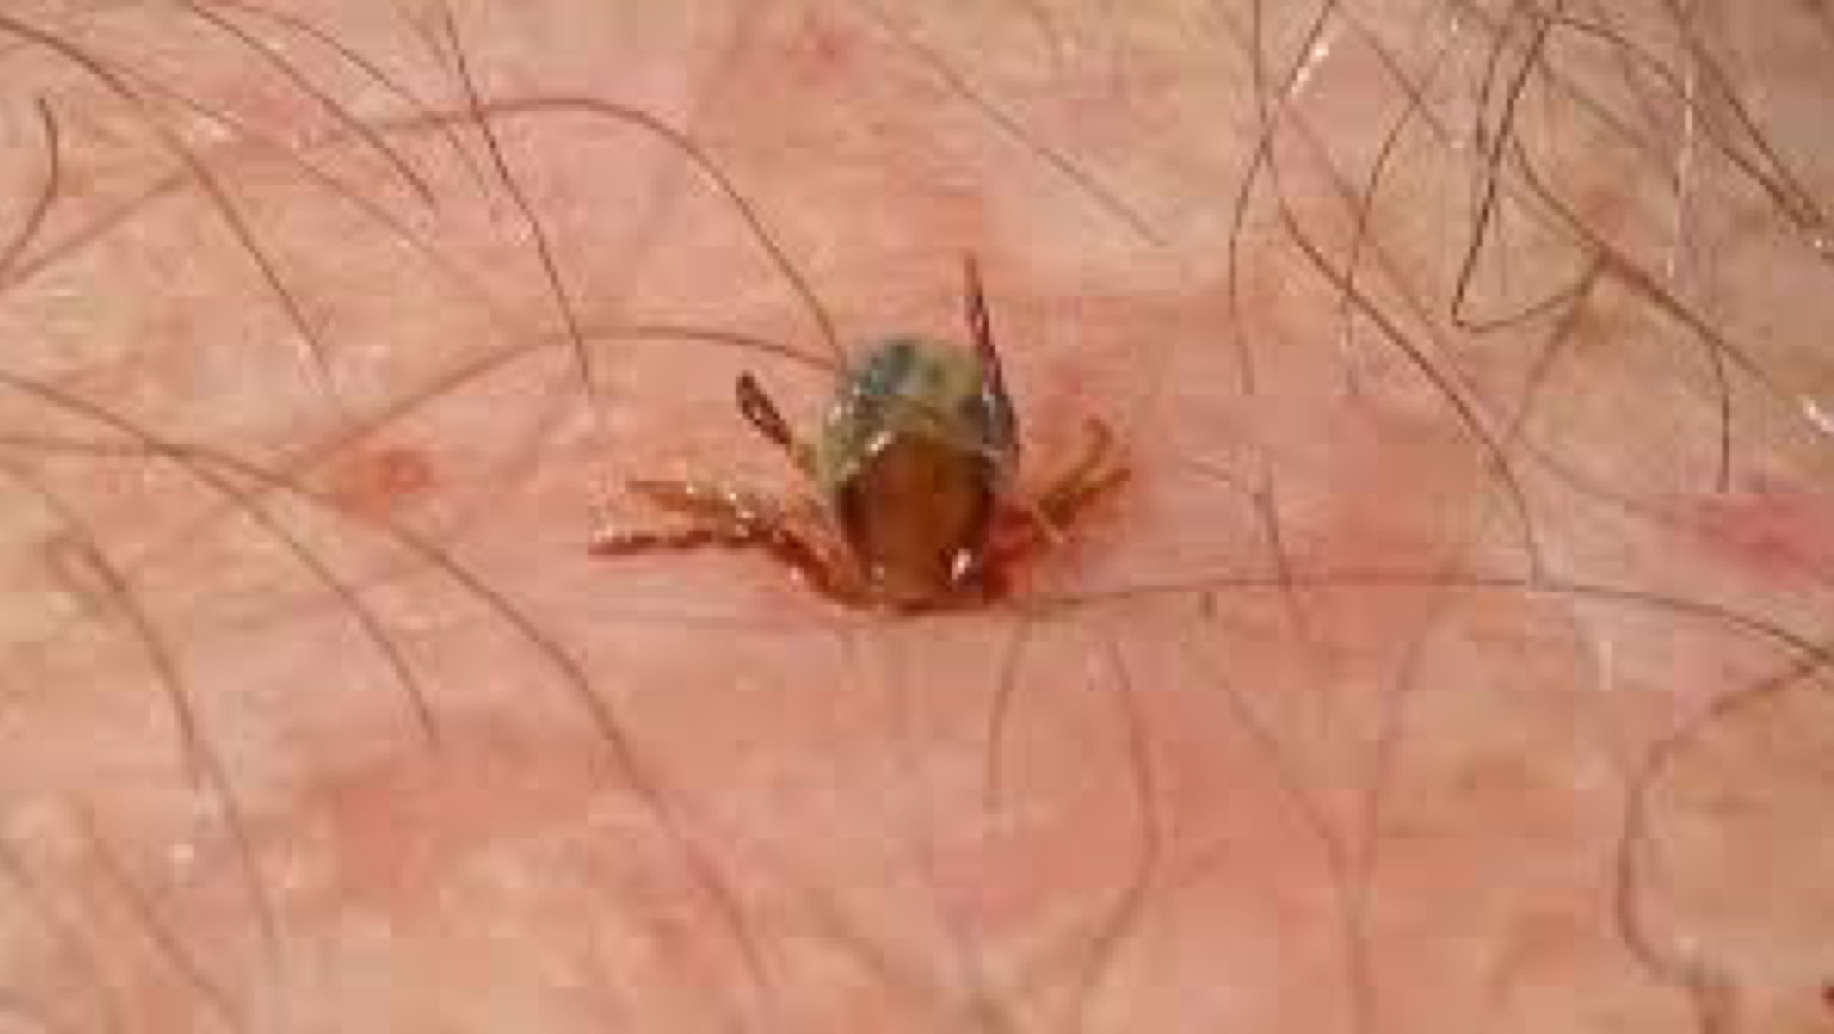 Embedded tick in human skin. Mouth parts beneath the surface.